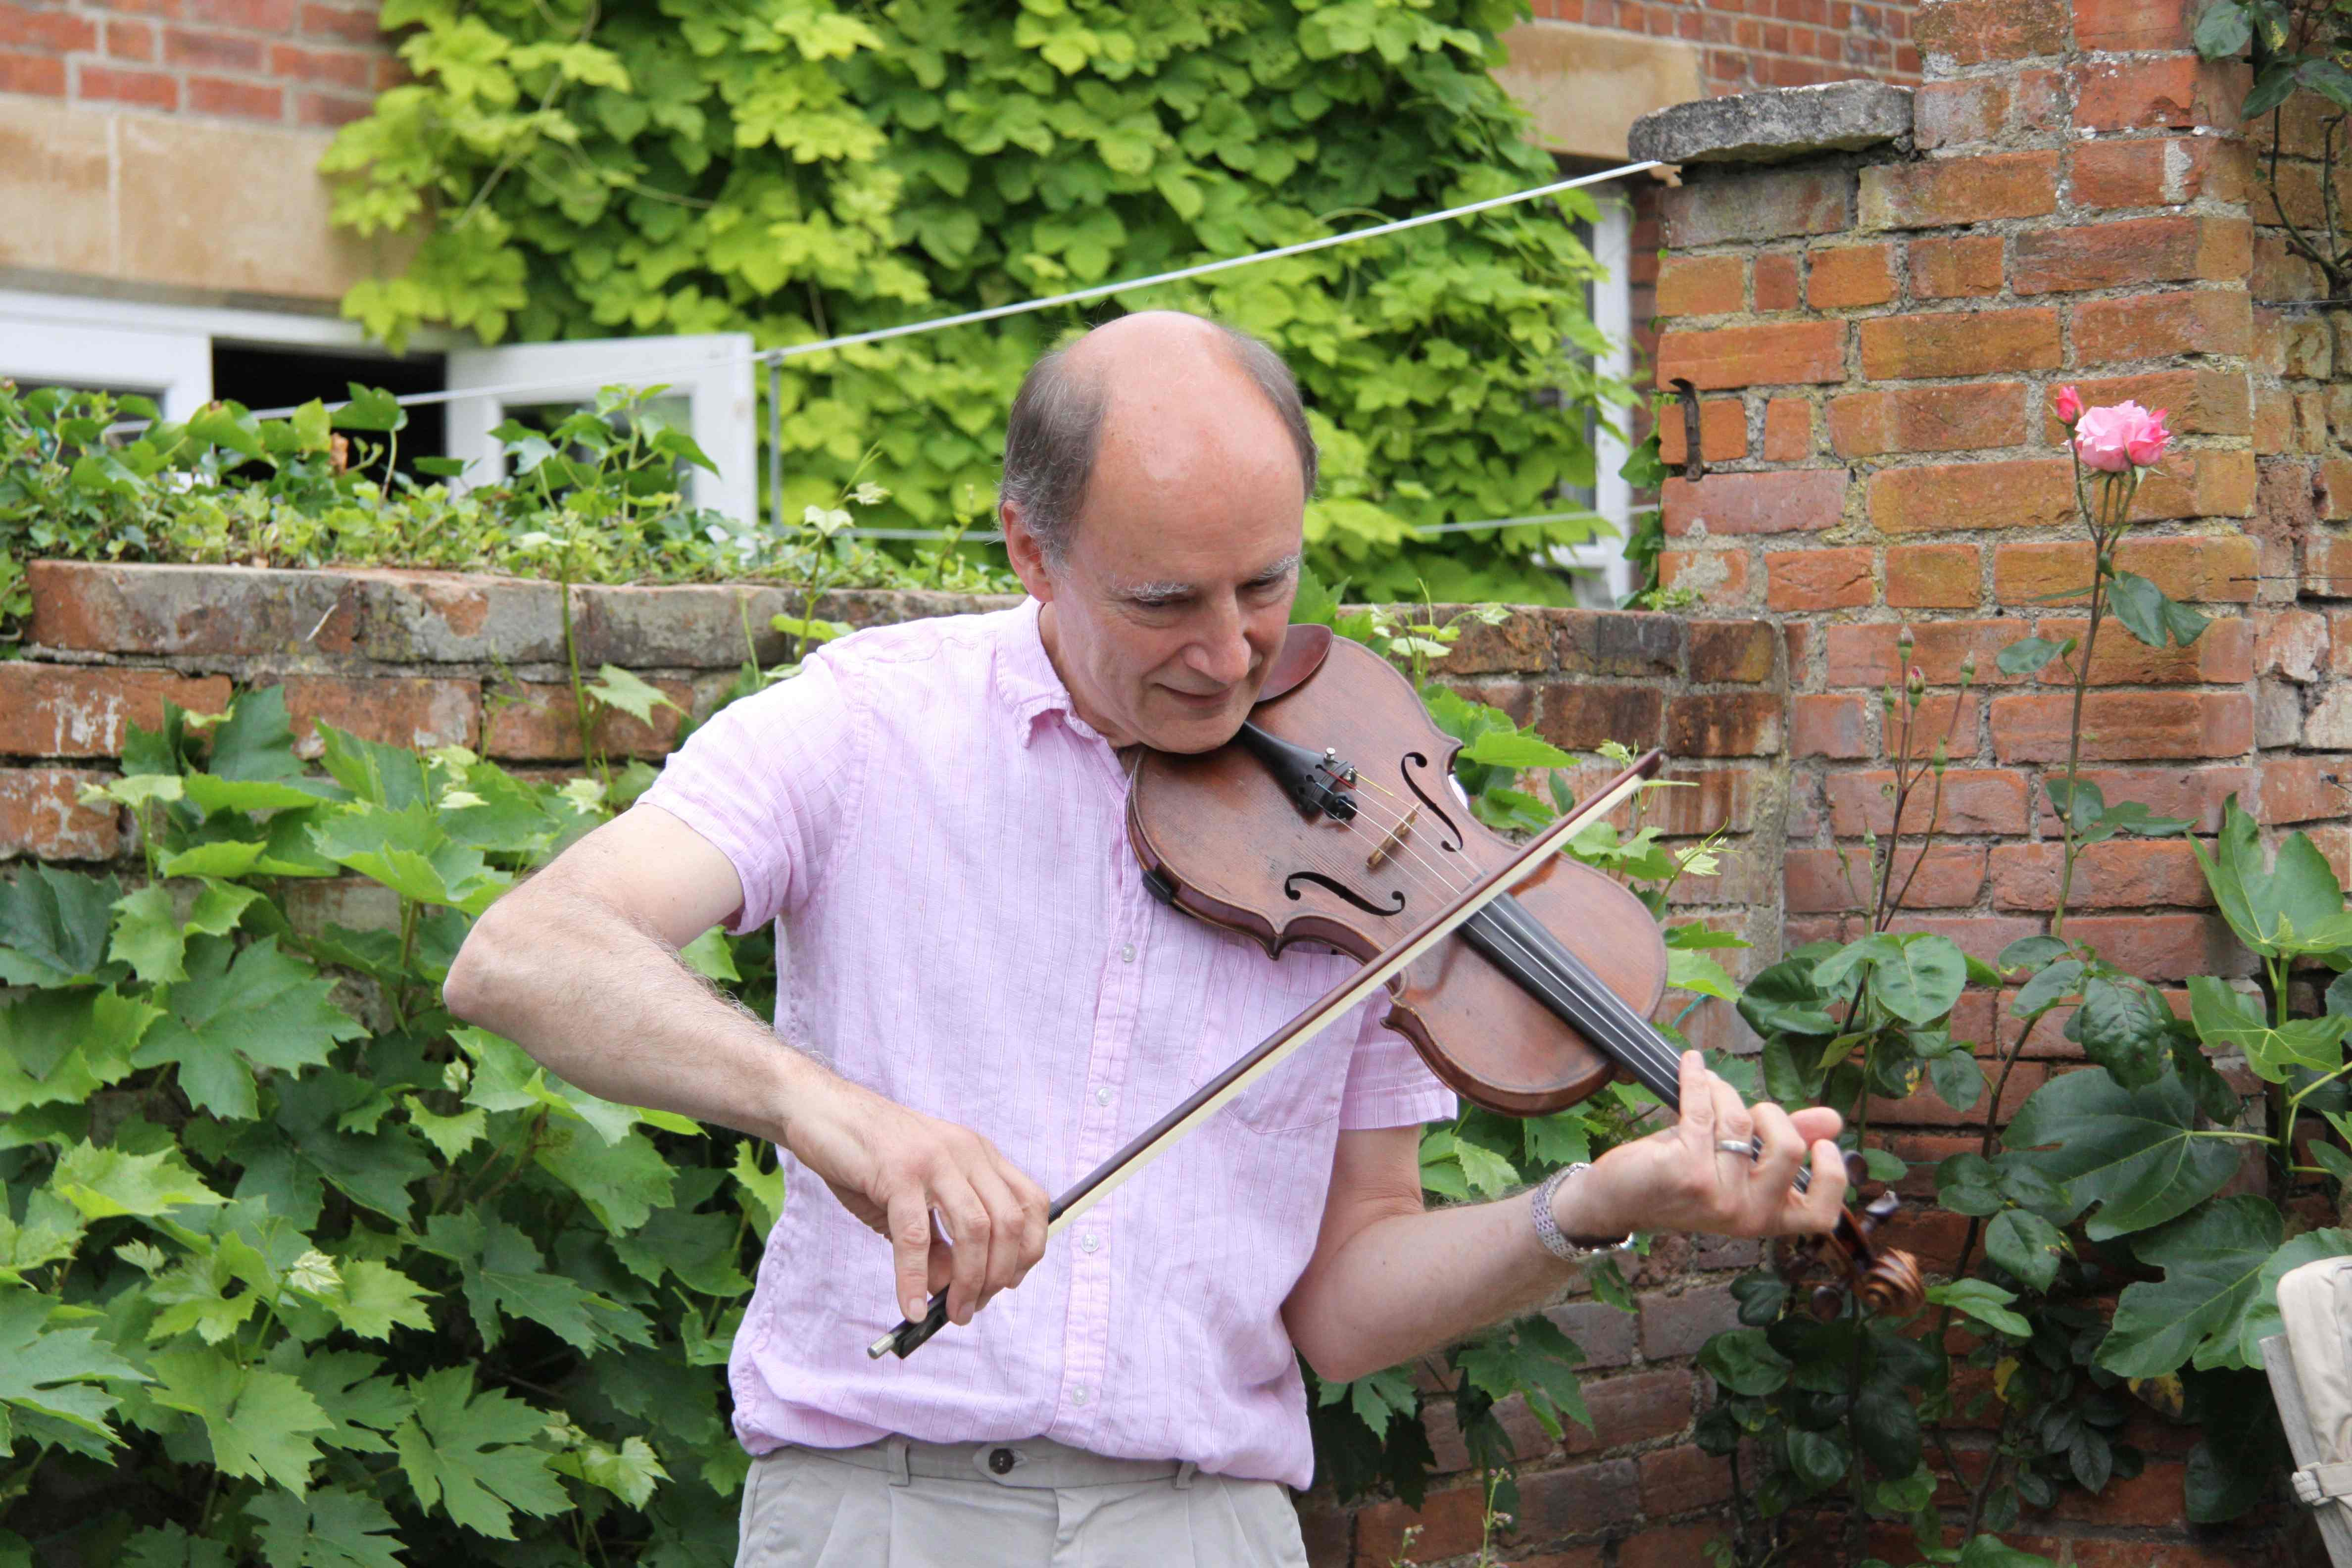 Philiip with violin